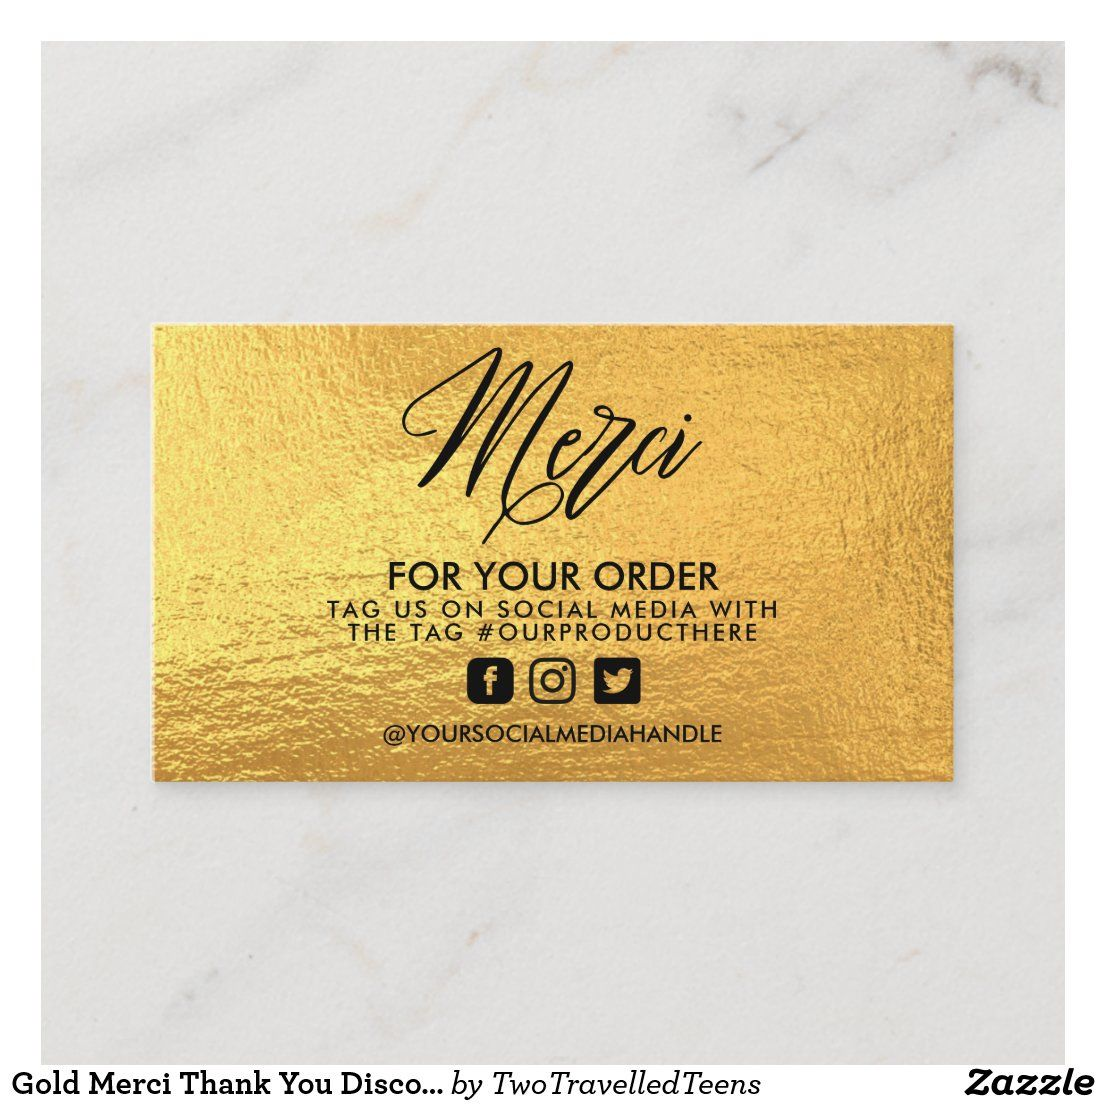 Gold Merci Thank You Discount Sale Business Card Zazzle Com Discount Sale Business Cards Cards